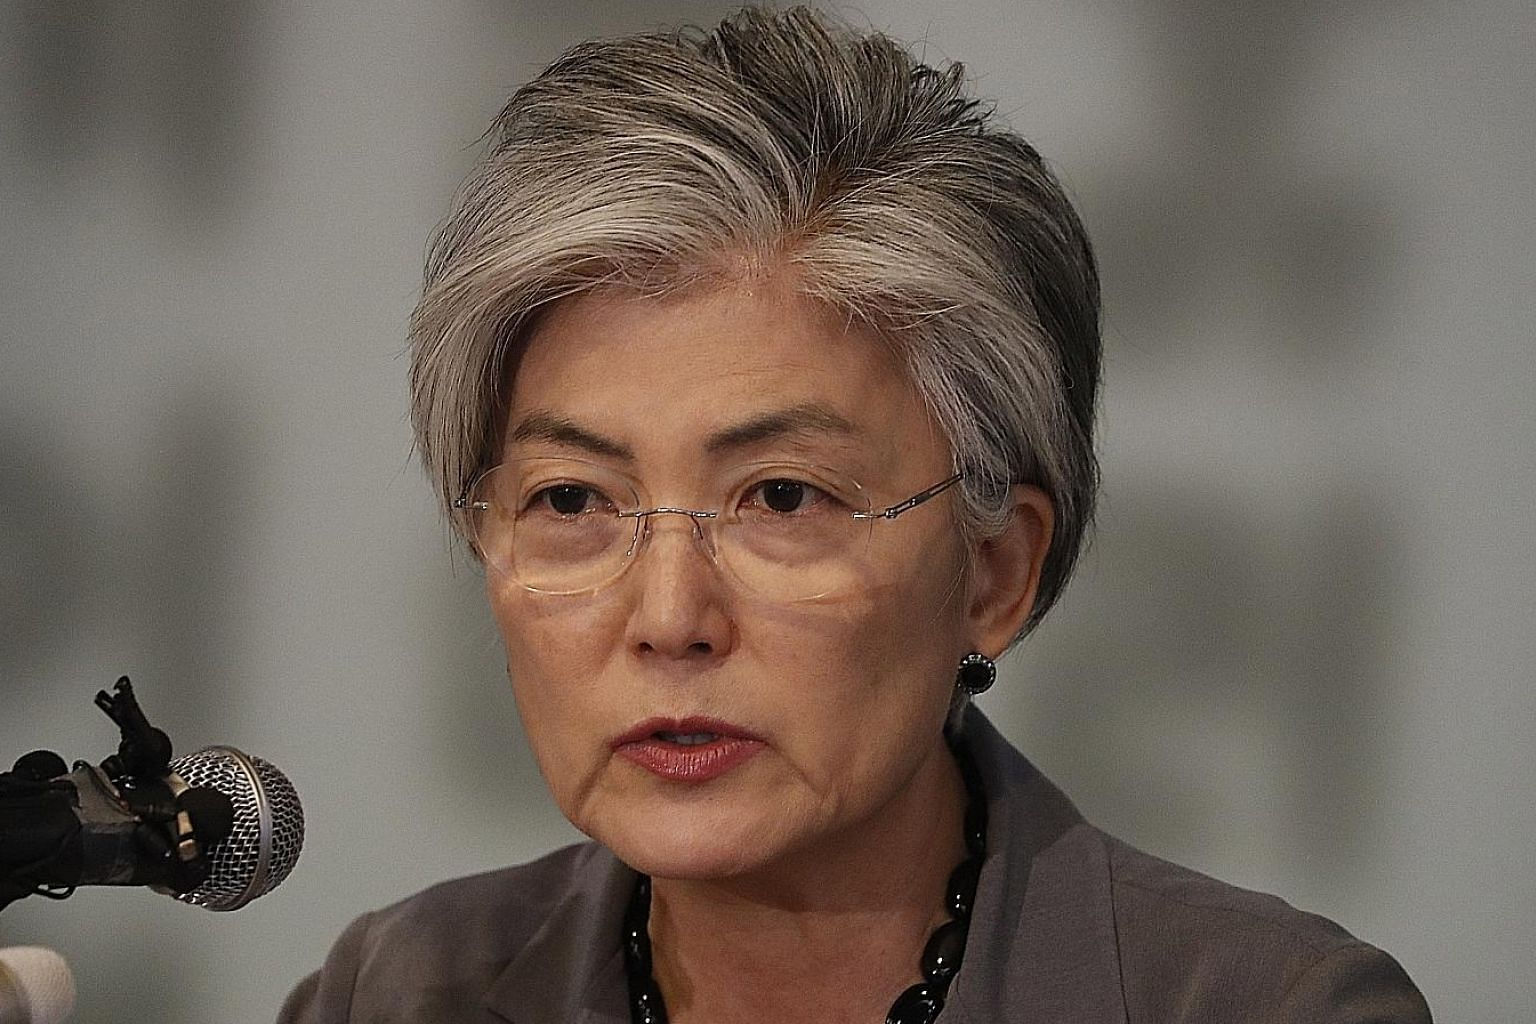 South Korean Foreign Minister Kang Kyung-wha said Seoul will work towards the end goal of complete denuclearisation.